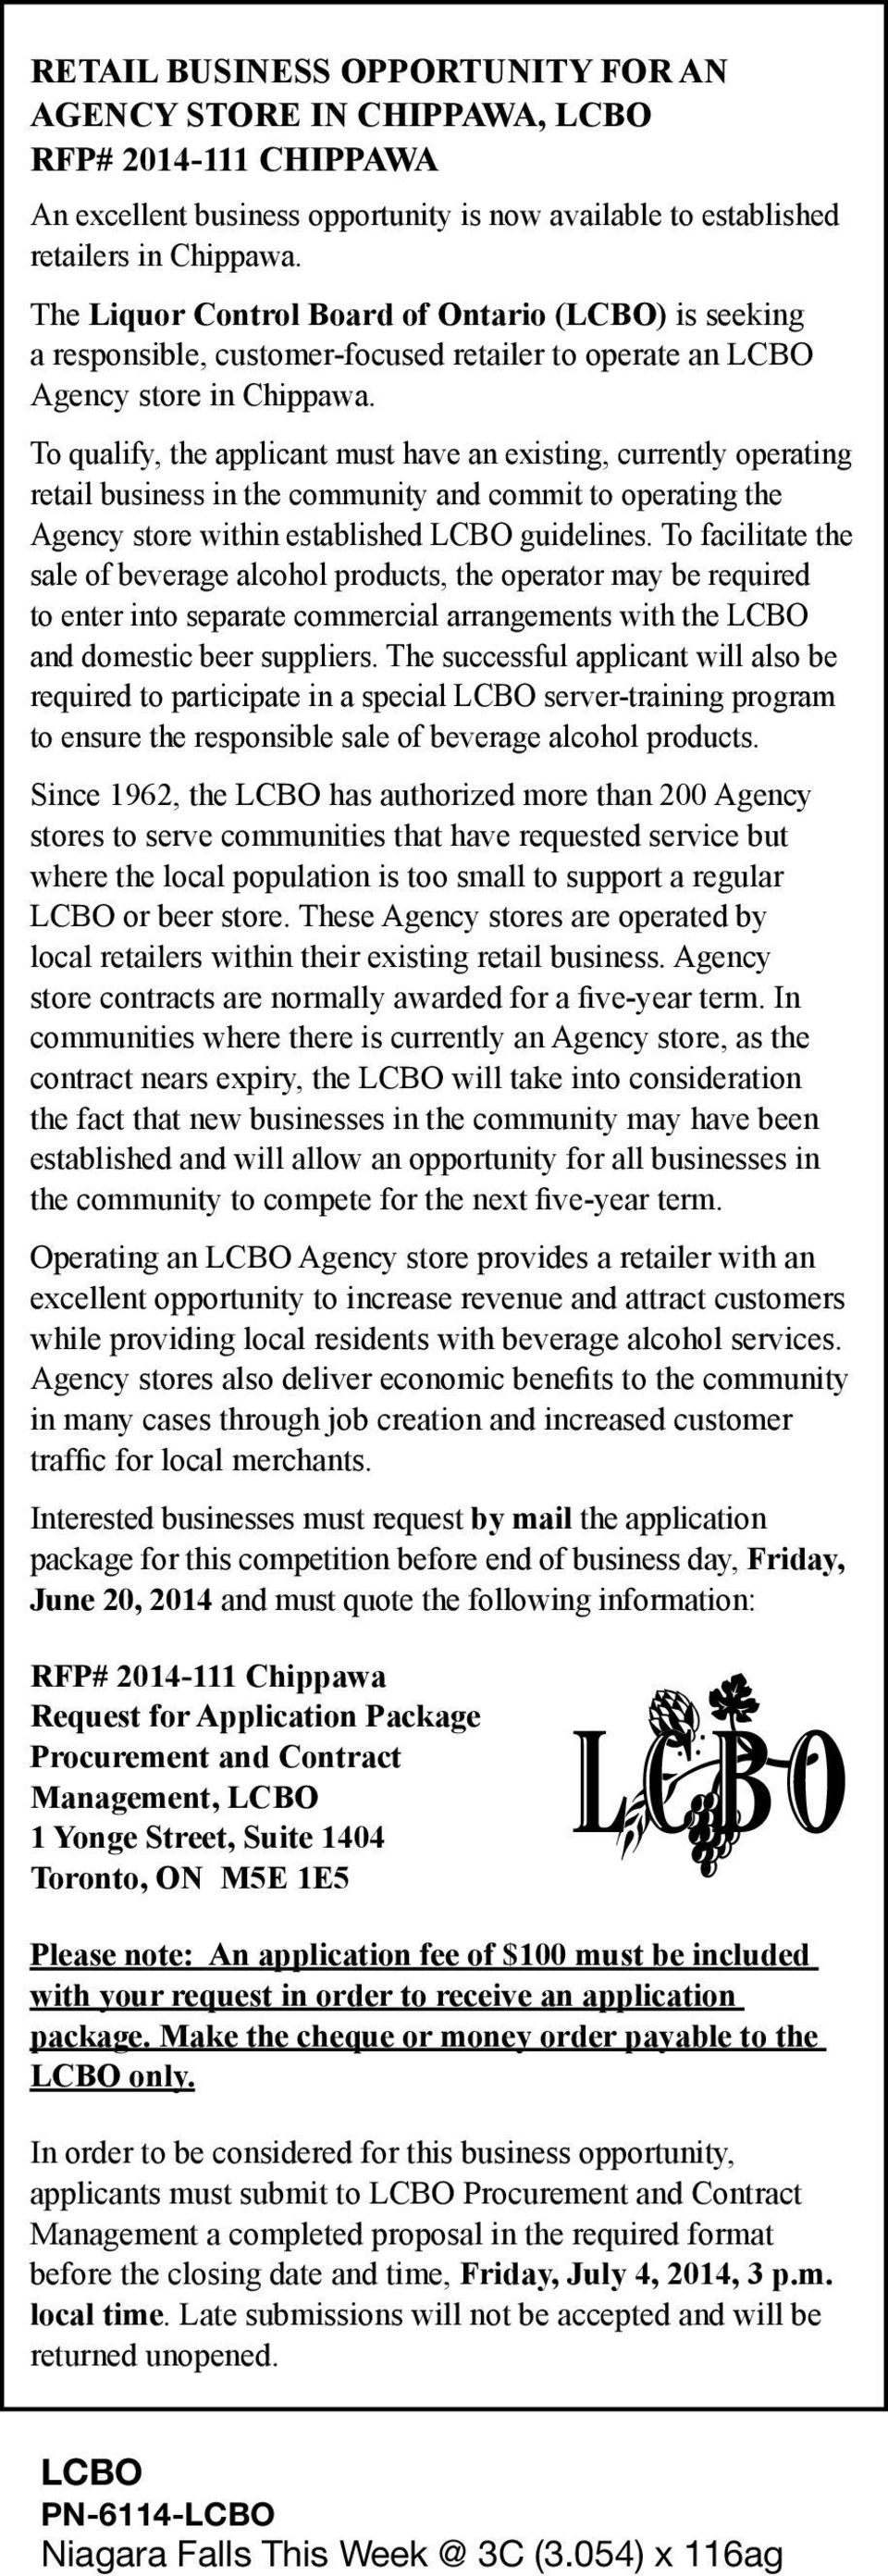 To qualify, the applicant must have an existing, currently operating retail business in the community and commit to operating the Agency store within established guidelines.